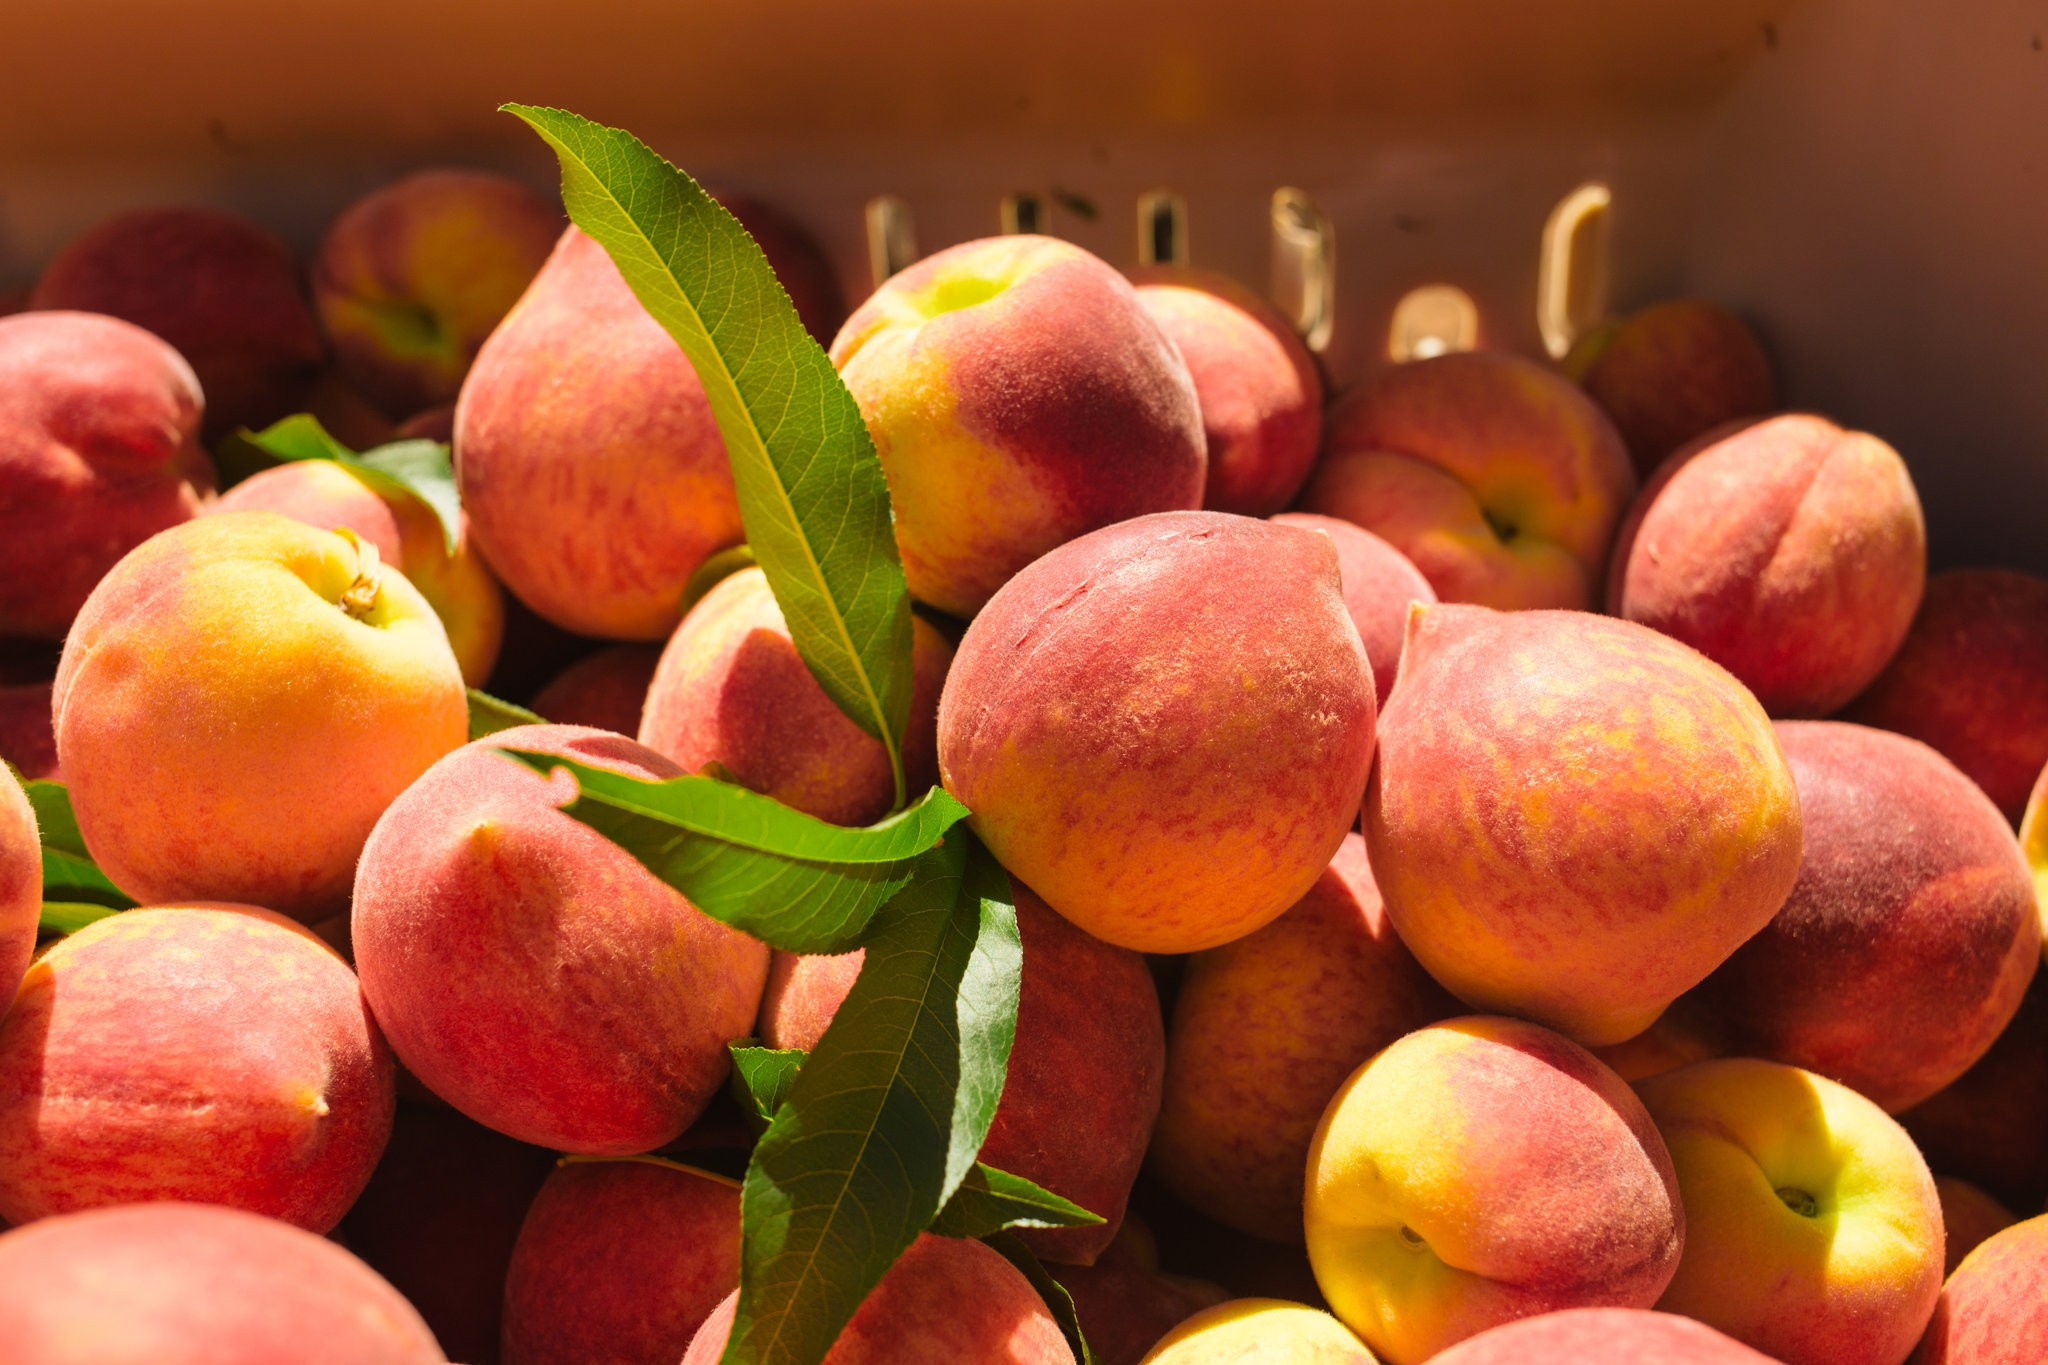 Peaches are a particularly delicate fruit to grow, requiring the right amount of cold weather at just the right time to produce good fruit. CreditMaura Friedman for The New York Times